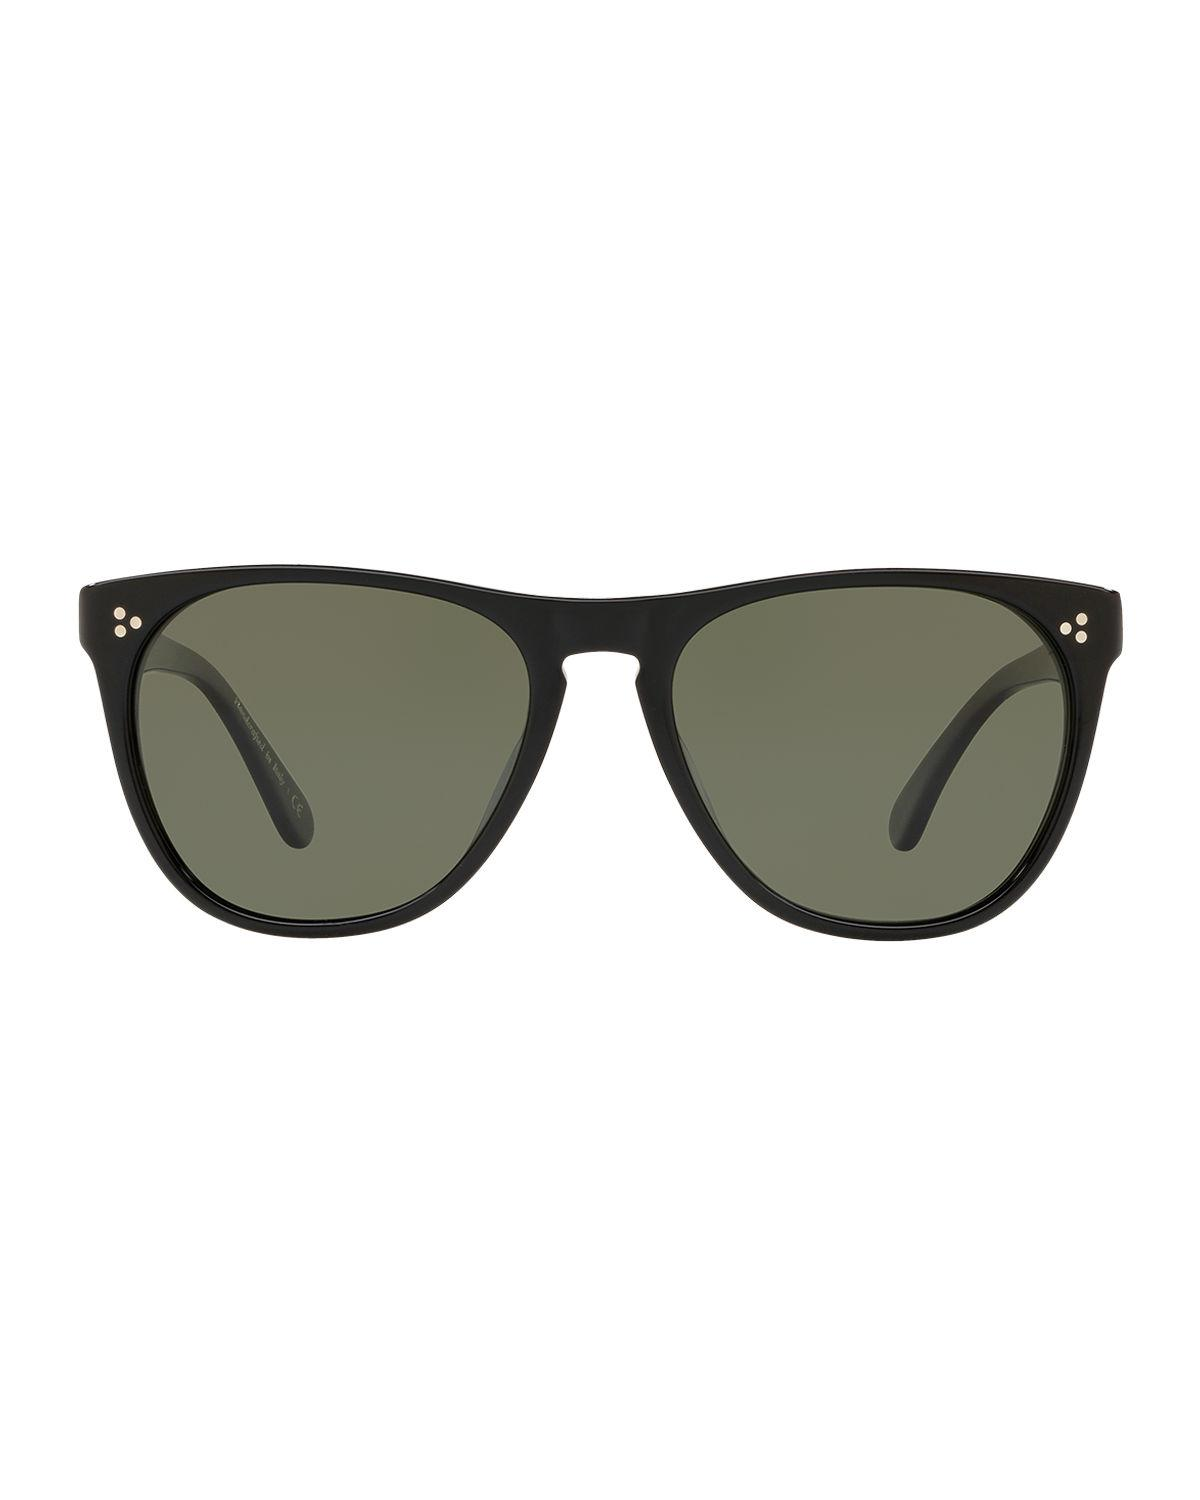 220447fa0c Lyst - Oliver Peoples Daddy B Square Acetate Sunglasses in Black